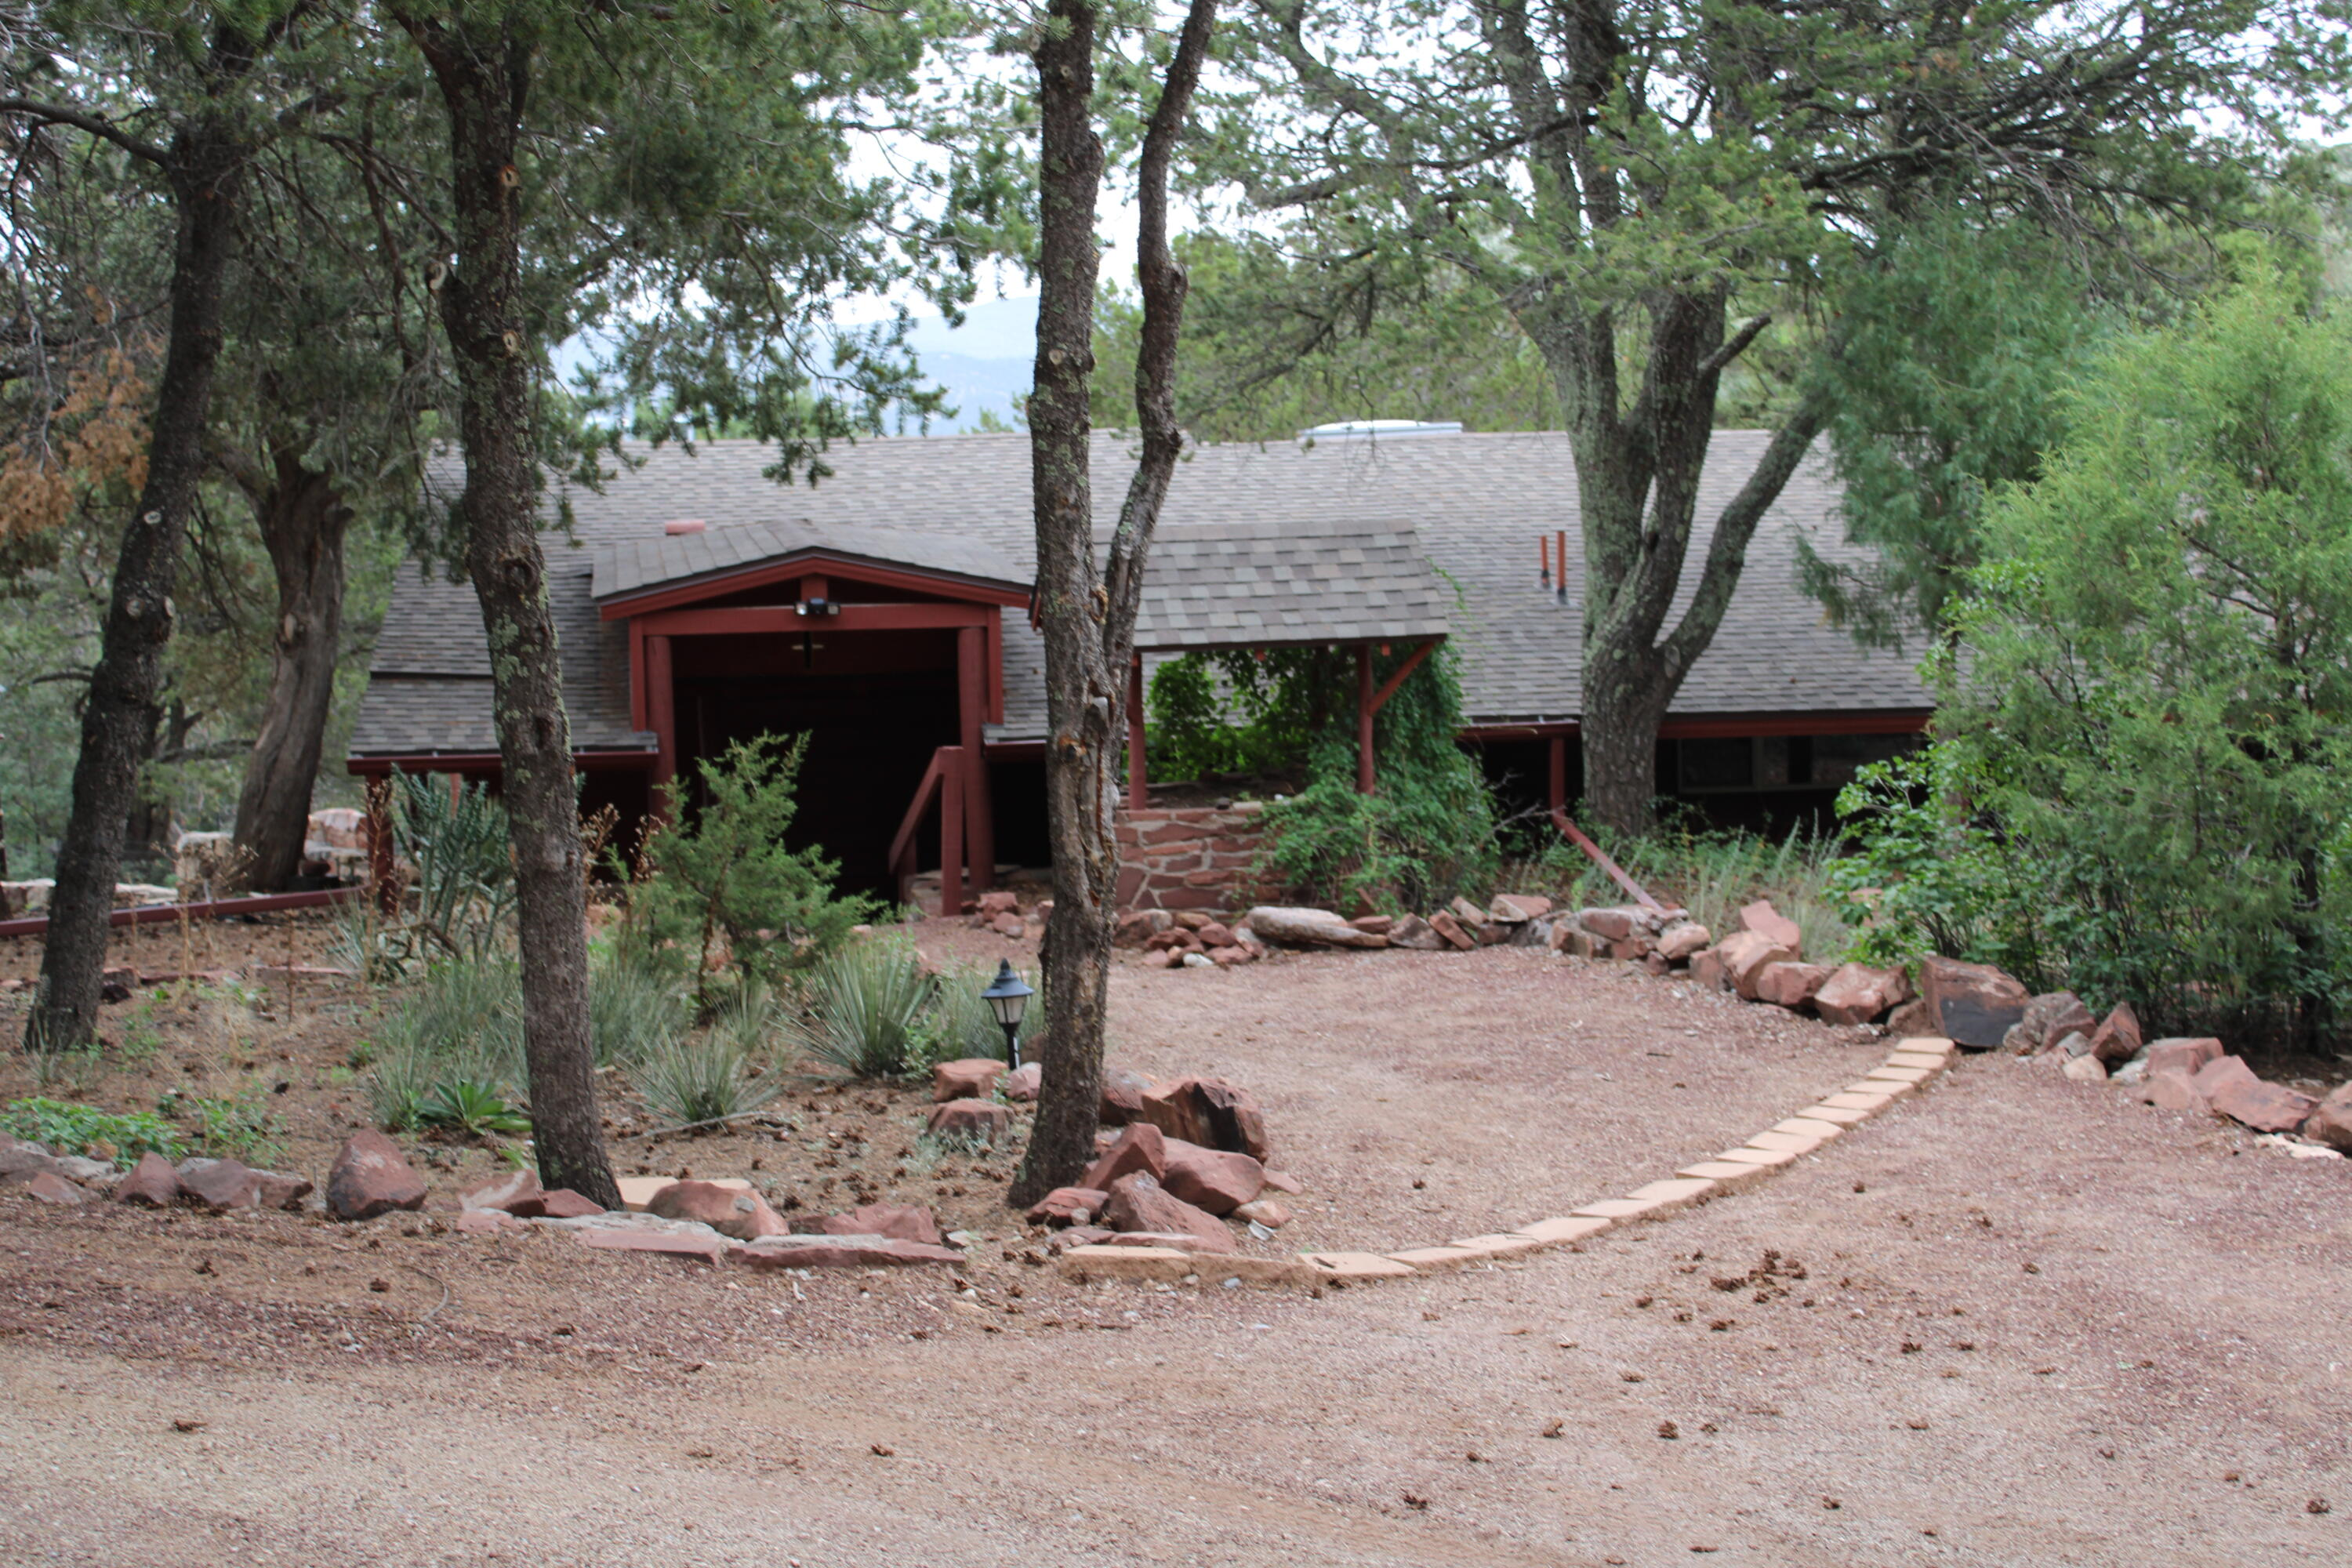 One of the few remaining estates in the East Mountains.  Two cabins on 10 lush acres adjoining the National Forest.  Original cabin built in 1936 (1609 sq ft) 3 bedrooms, 1.5 baths, 2 car detached garage.  Guest houswe is 884 sq ft, 2 bedrooms, 1 full bath, kitchen and service room.  Currently rented for $900.00 a month.  Both homes have stone fireplaces, hardwood flooring with old world charm.  Fabulous views from remaining acreage.